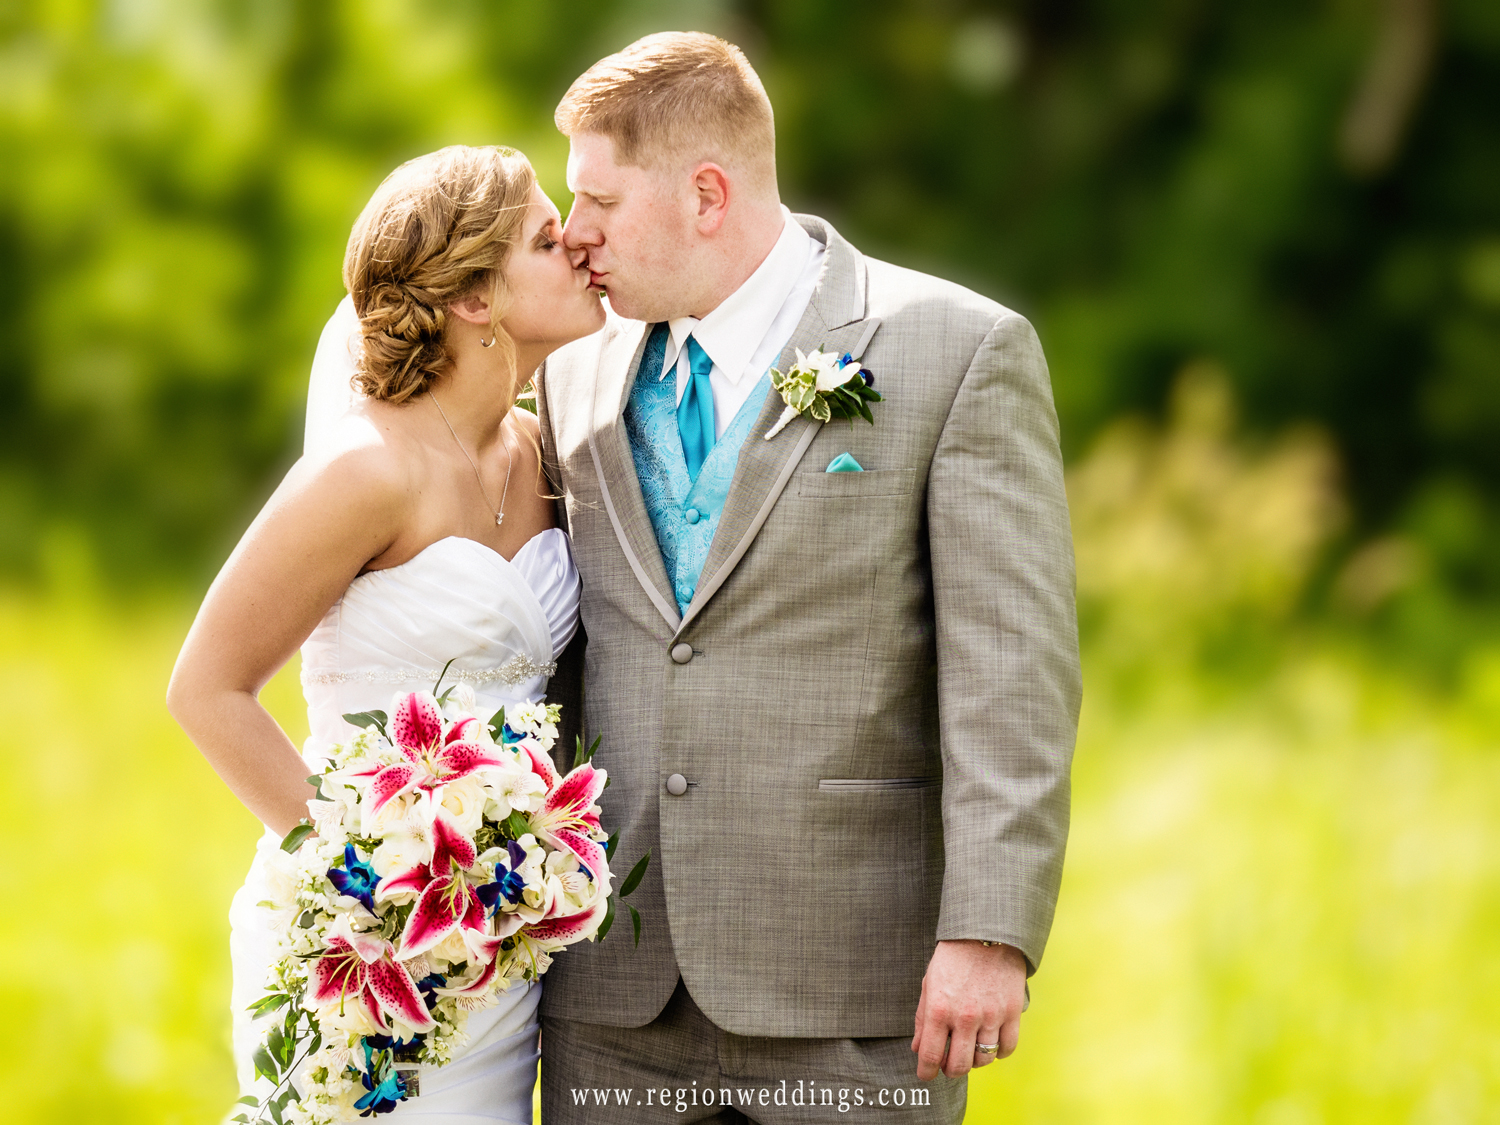 The bride and groom kiss as the late day sun shines upon them.